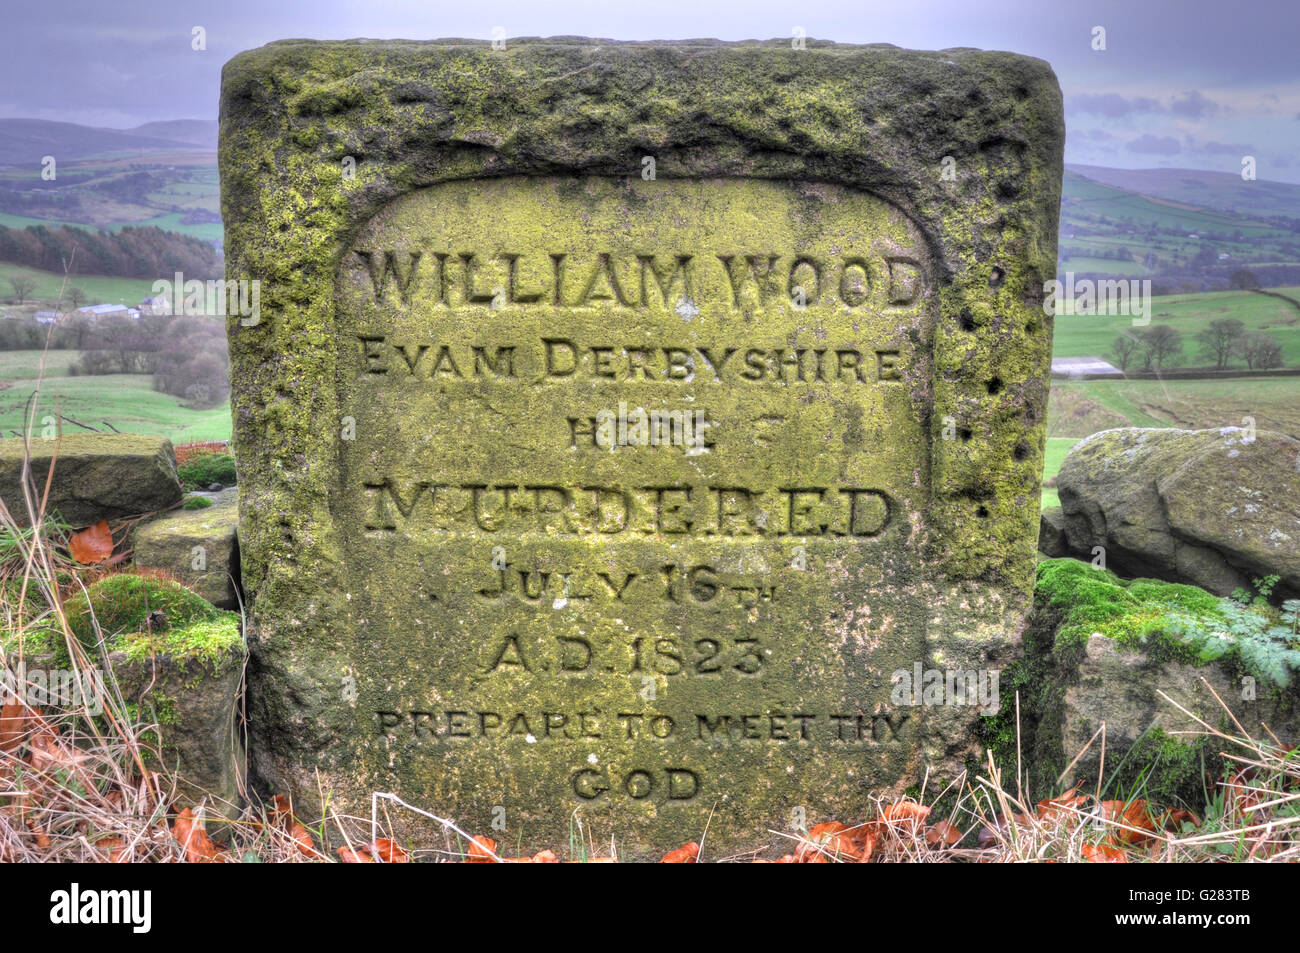 Roadside Murder stone, Near Disley, Near Manchester, UK. Commemorating the murder of William Wood on the road in - Stock Image